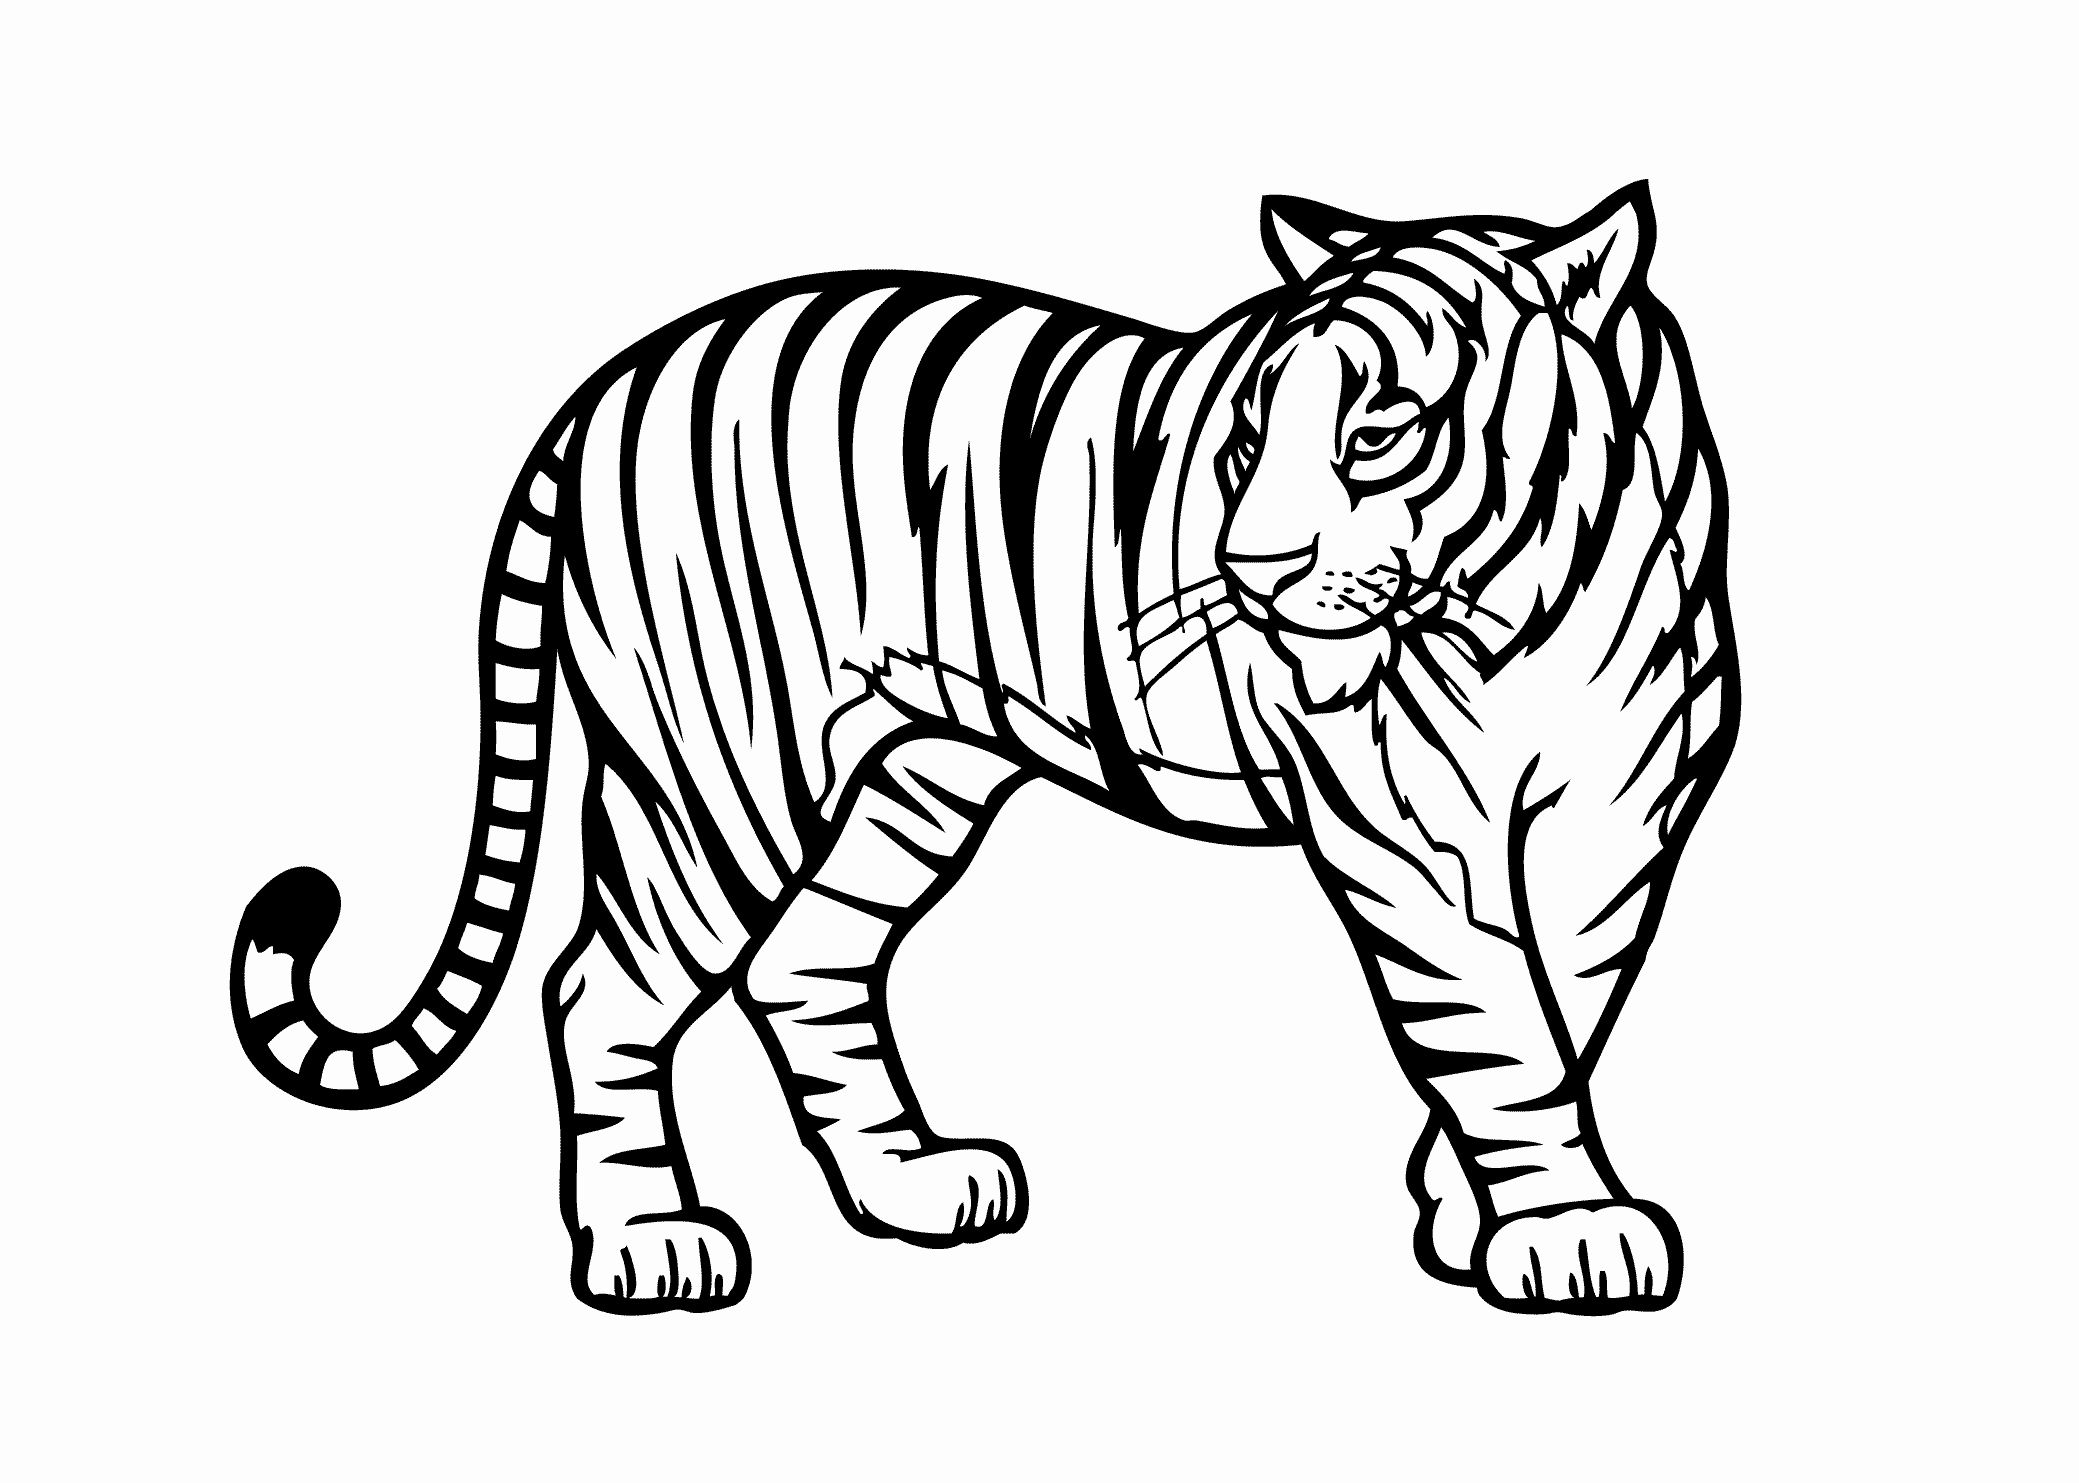 Children Animal Coloring Pages Beautiful Animal Coloring Sheets For Kids Coloring Zoo Animal Coloring Pages Coloring Pictures Of Animals Animal Coloring Books